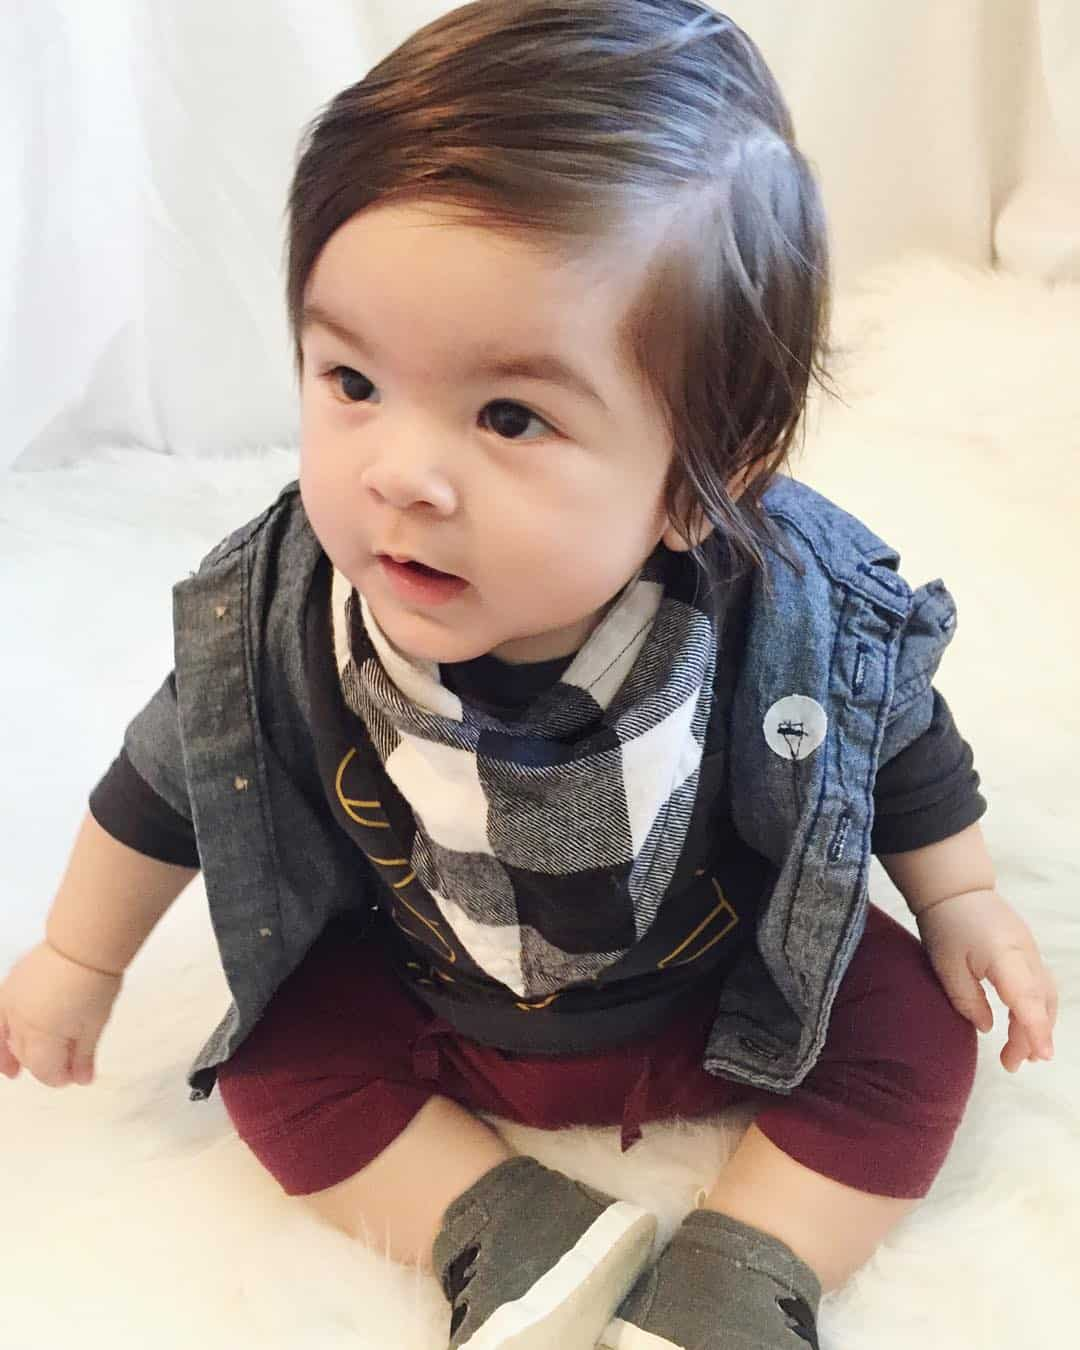 Incredible 25 Cute Baby Boy Haircuts For Your Lovely Toddler Hairstyle Inspiration Daily Dogsangcom